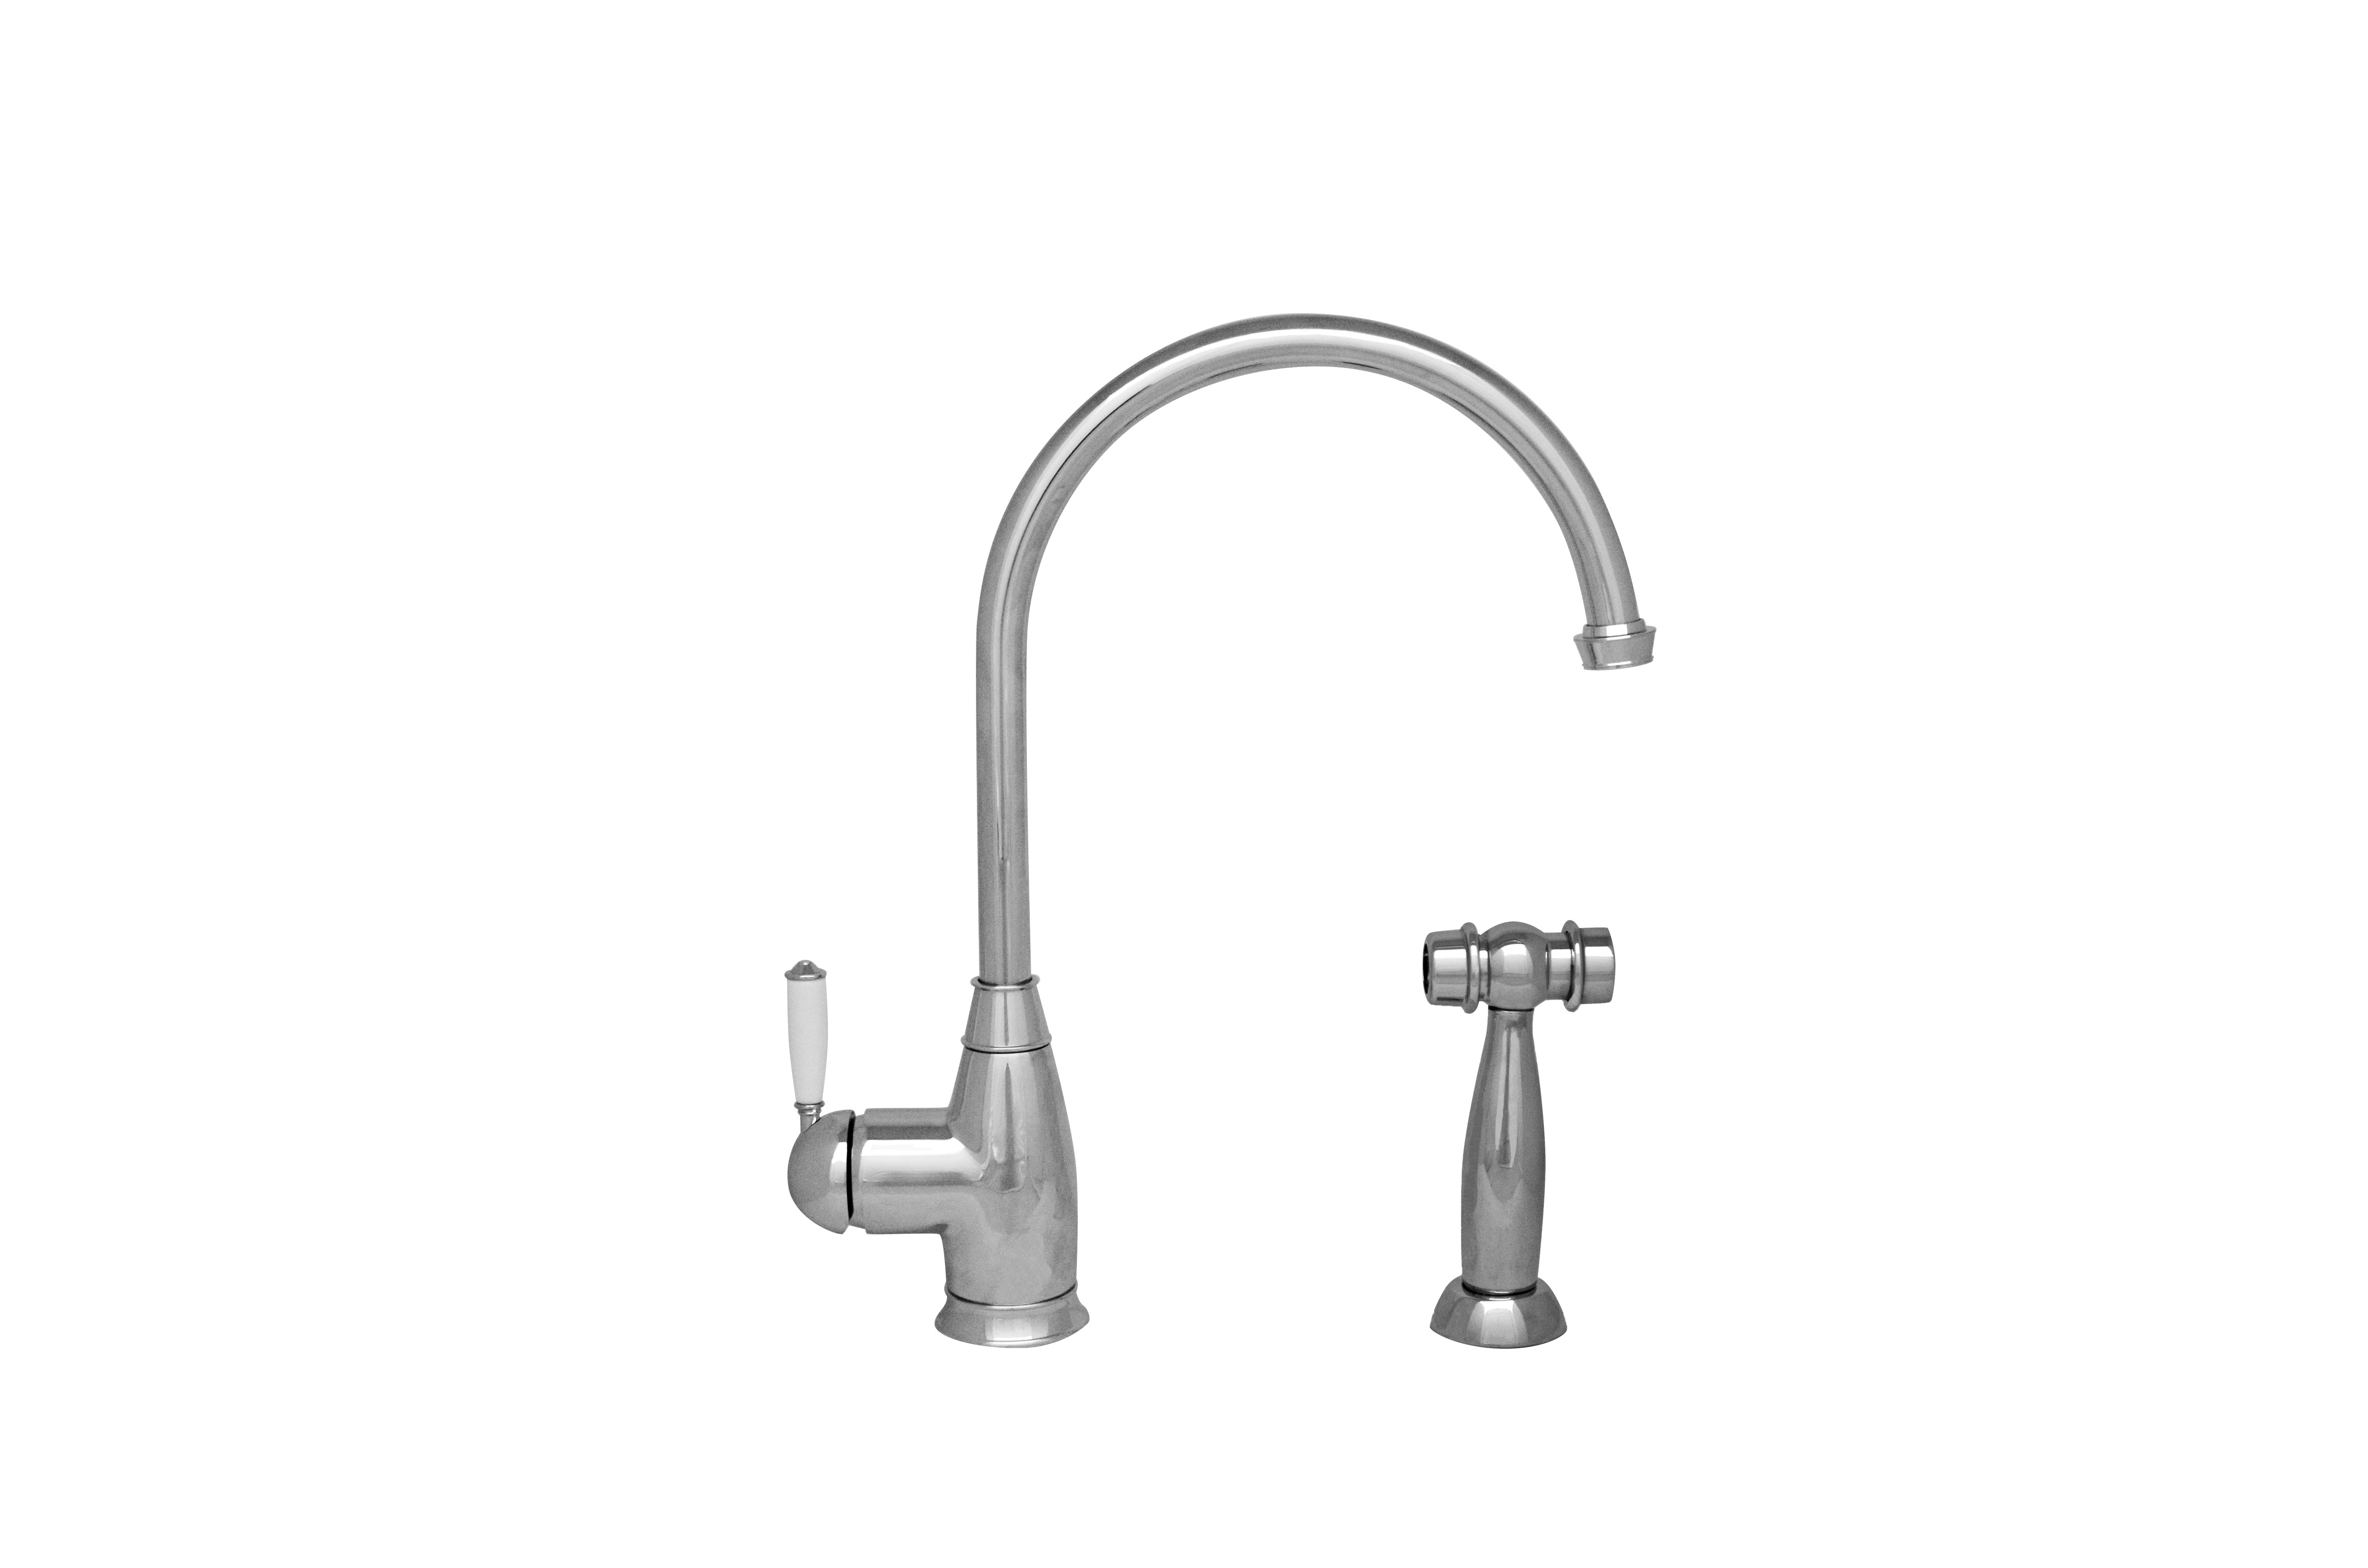 Whitehaus WHQNP-34682-C Queenhaus Single Lever Faucet with Side Spray in Polished Chrome